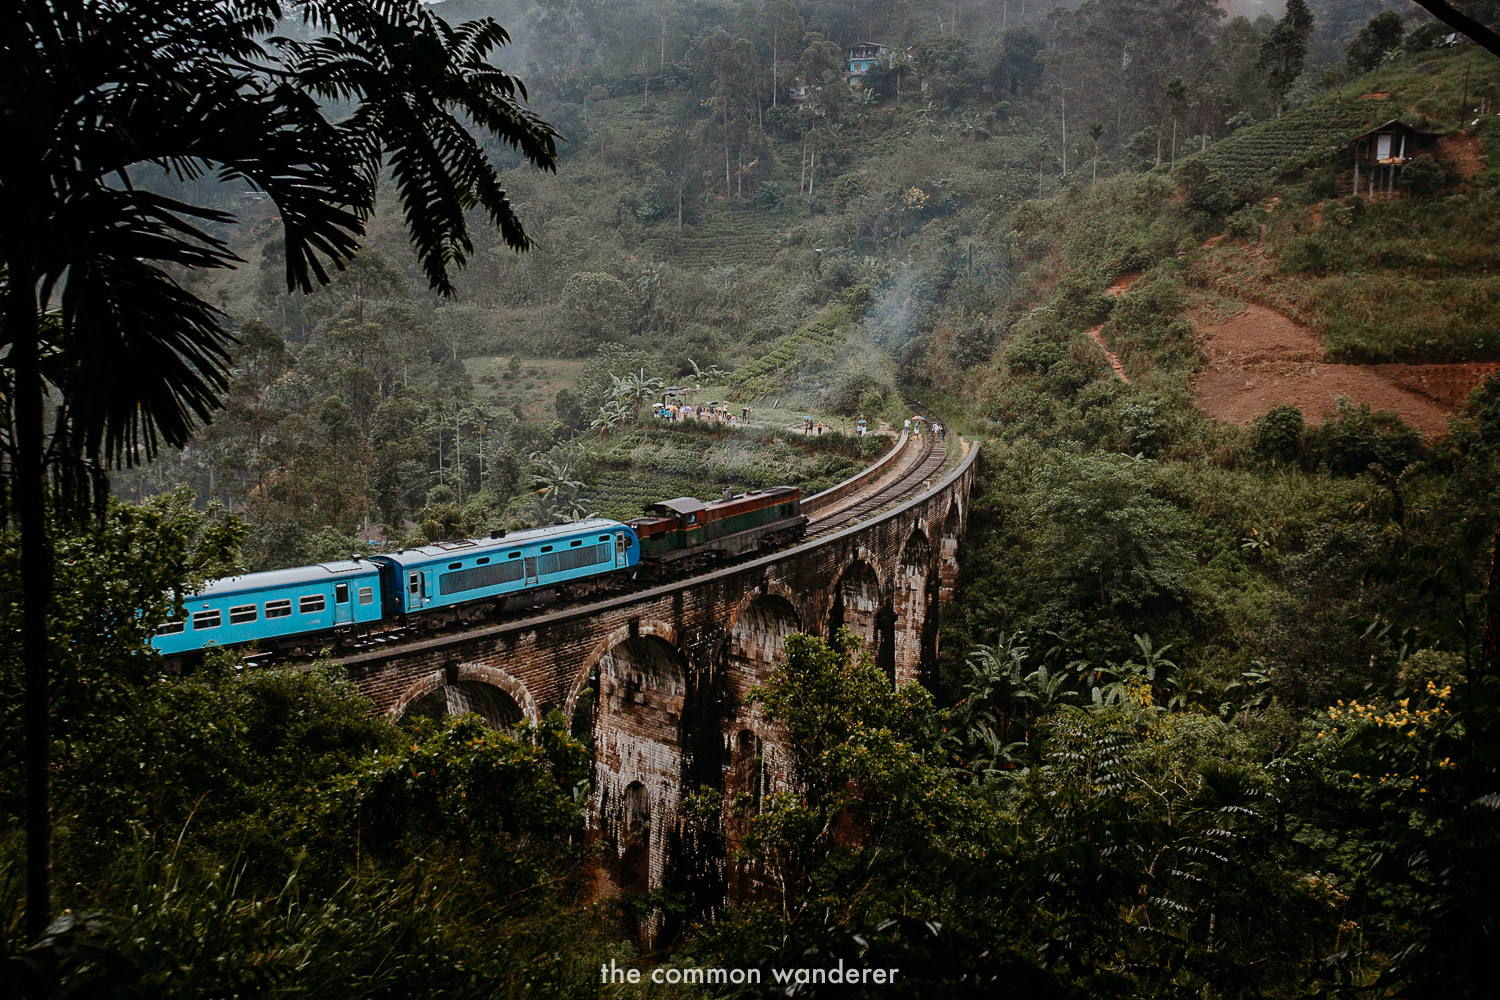 The Kandy to Ella train ride is one of the best in Sri Lanka | Sri Lanka travel guide